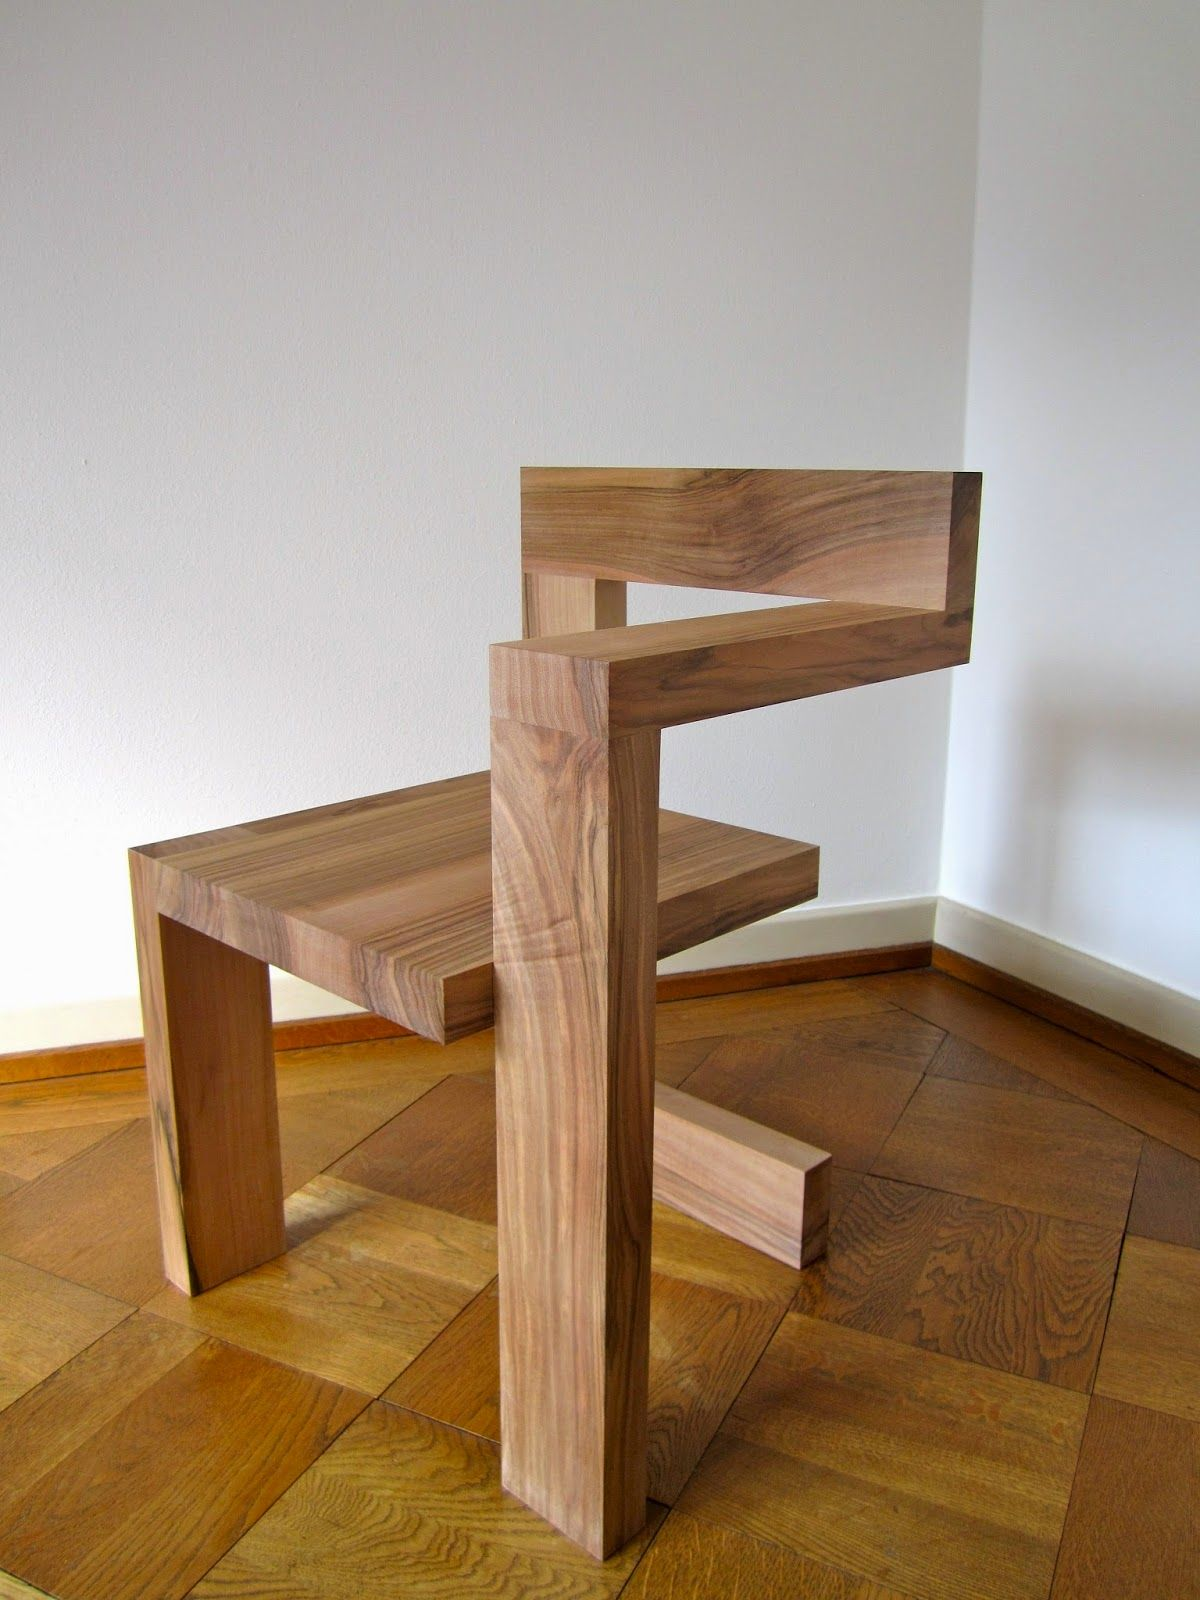 Rietveld furniture design building construction for Sedie design furniture e commerce